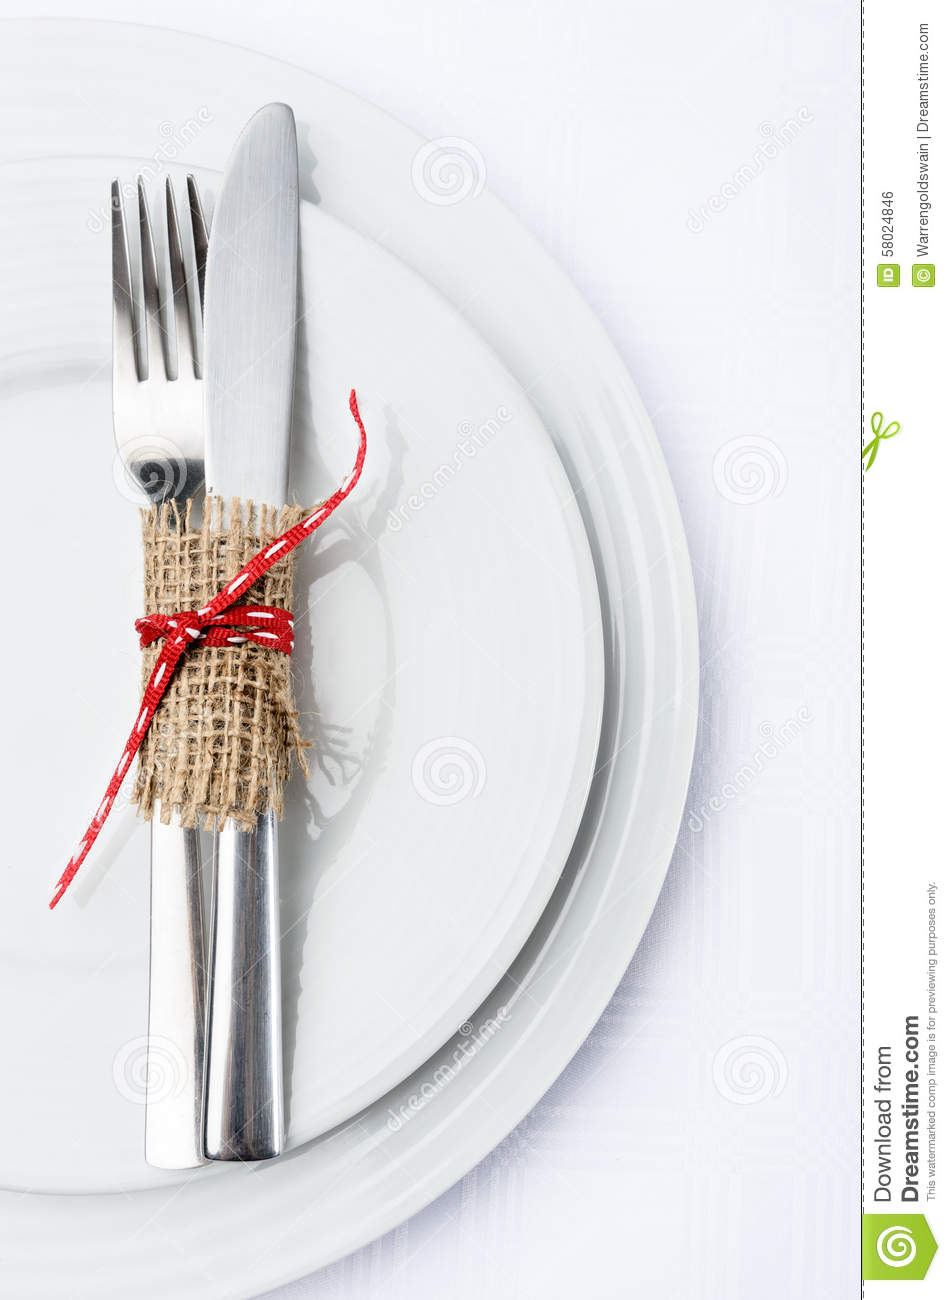 Simple table setting with white plates and silverware  sc 1 st  Dreamstime.com & Simple Table Setting With White Plates And Silverware Stock Photo ...